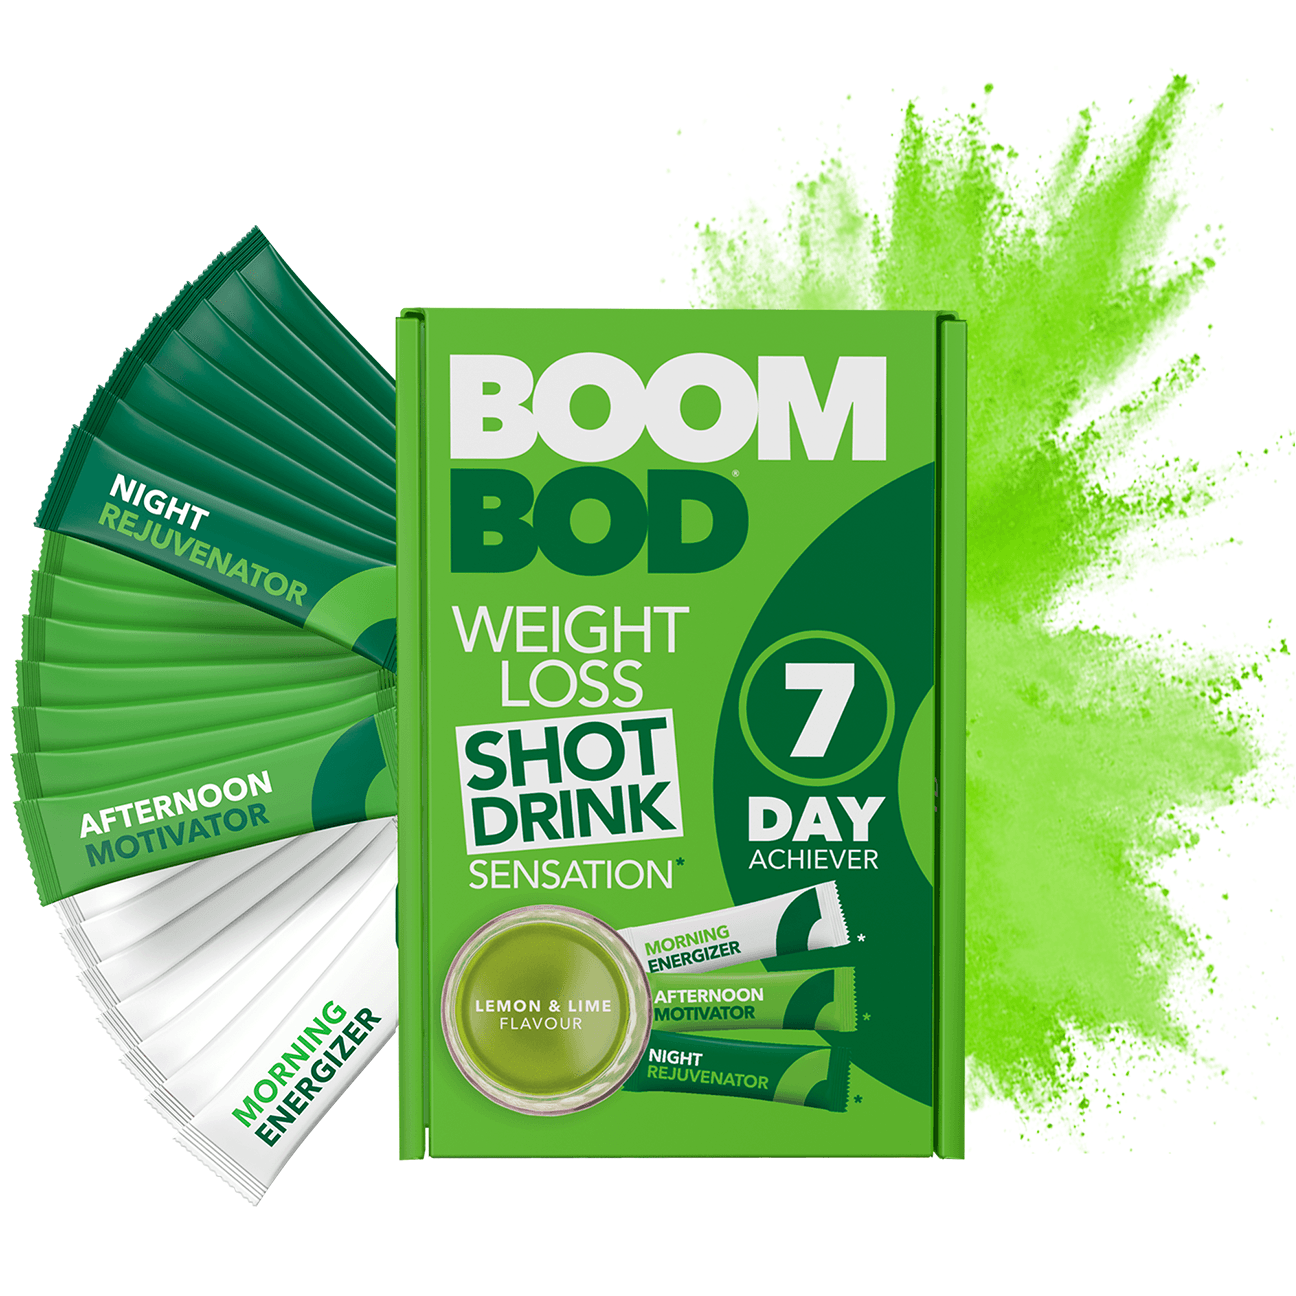 Boombod 7 Day Achiever | Lemon Lime | Weight Loss Shot Drink